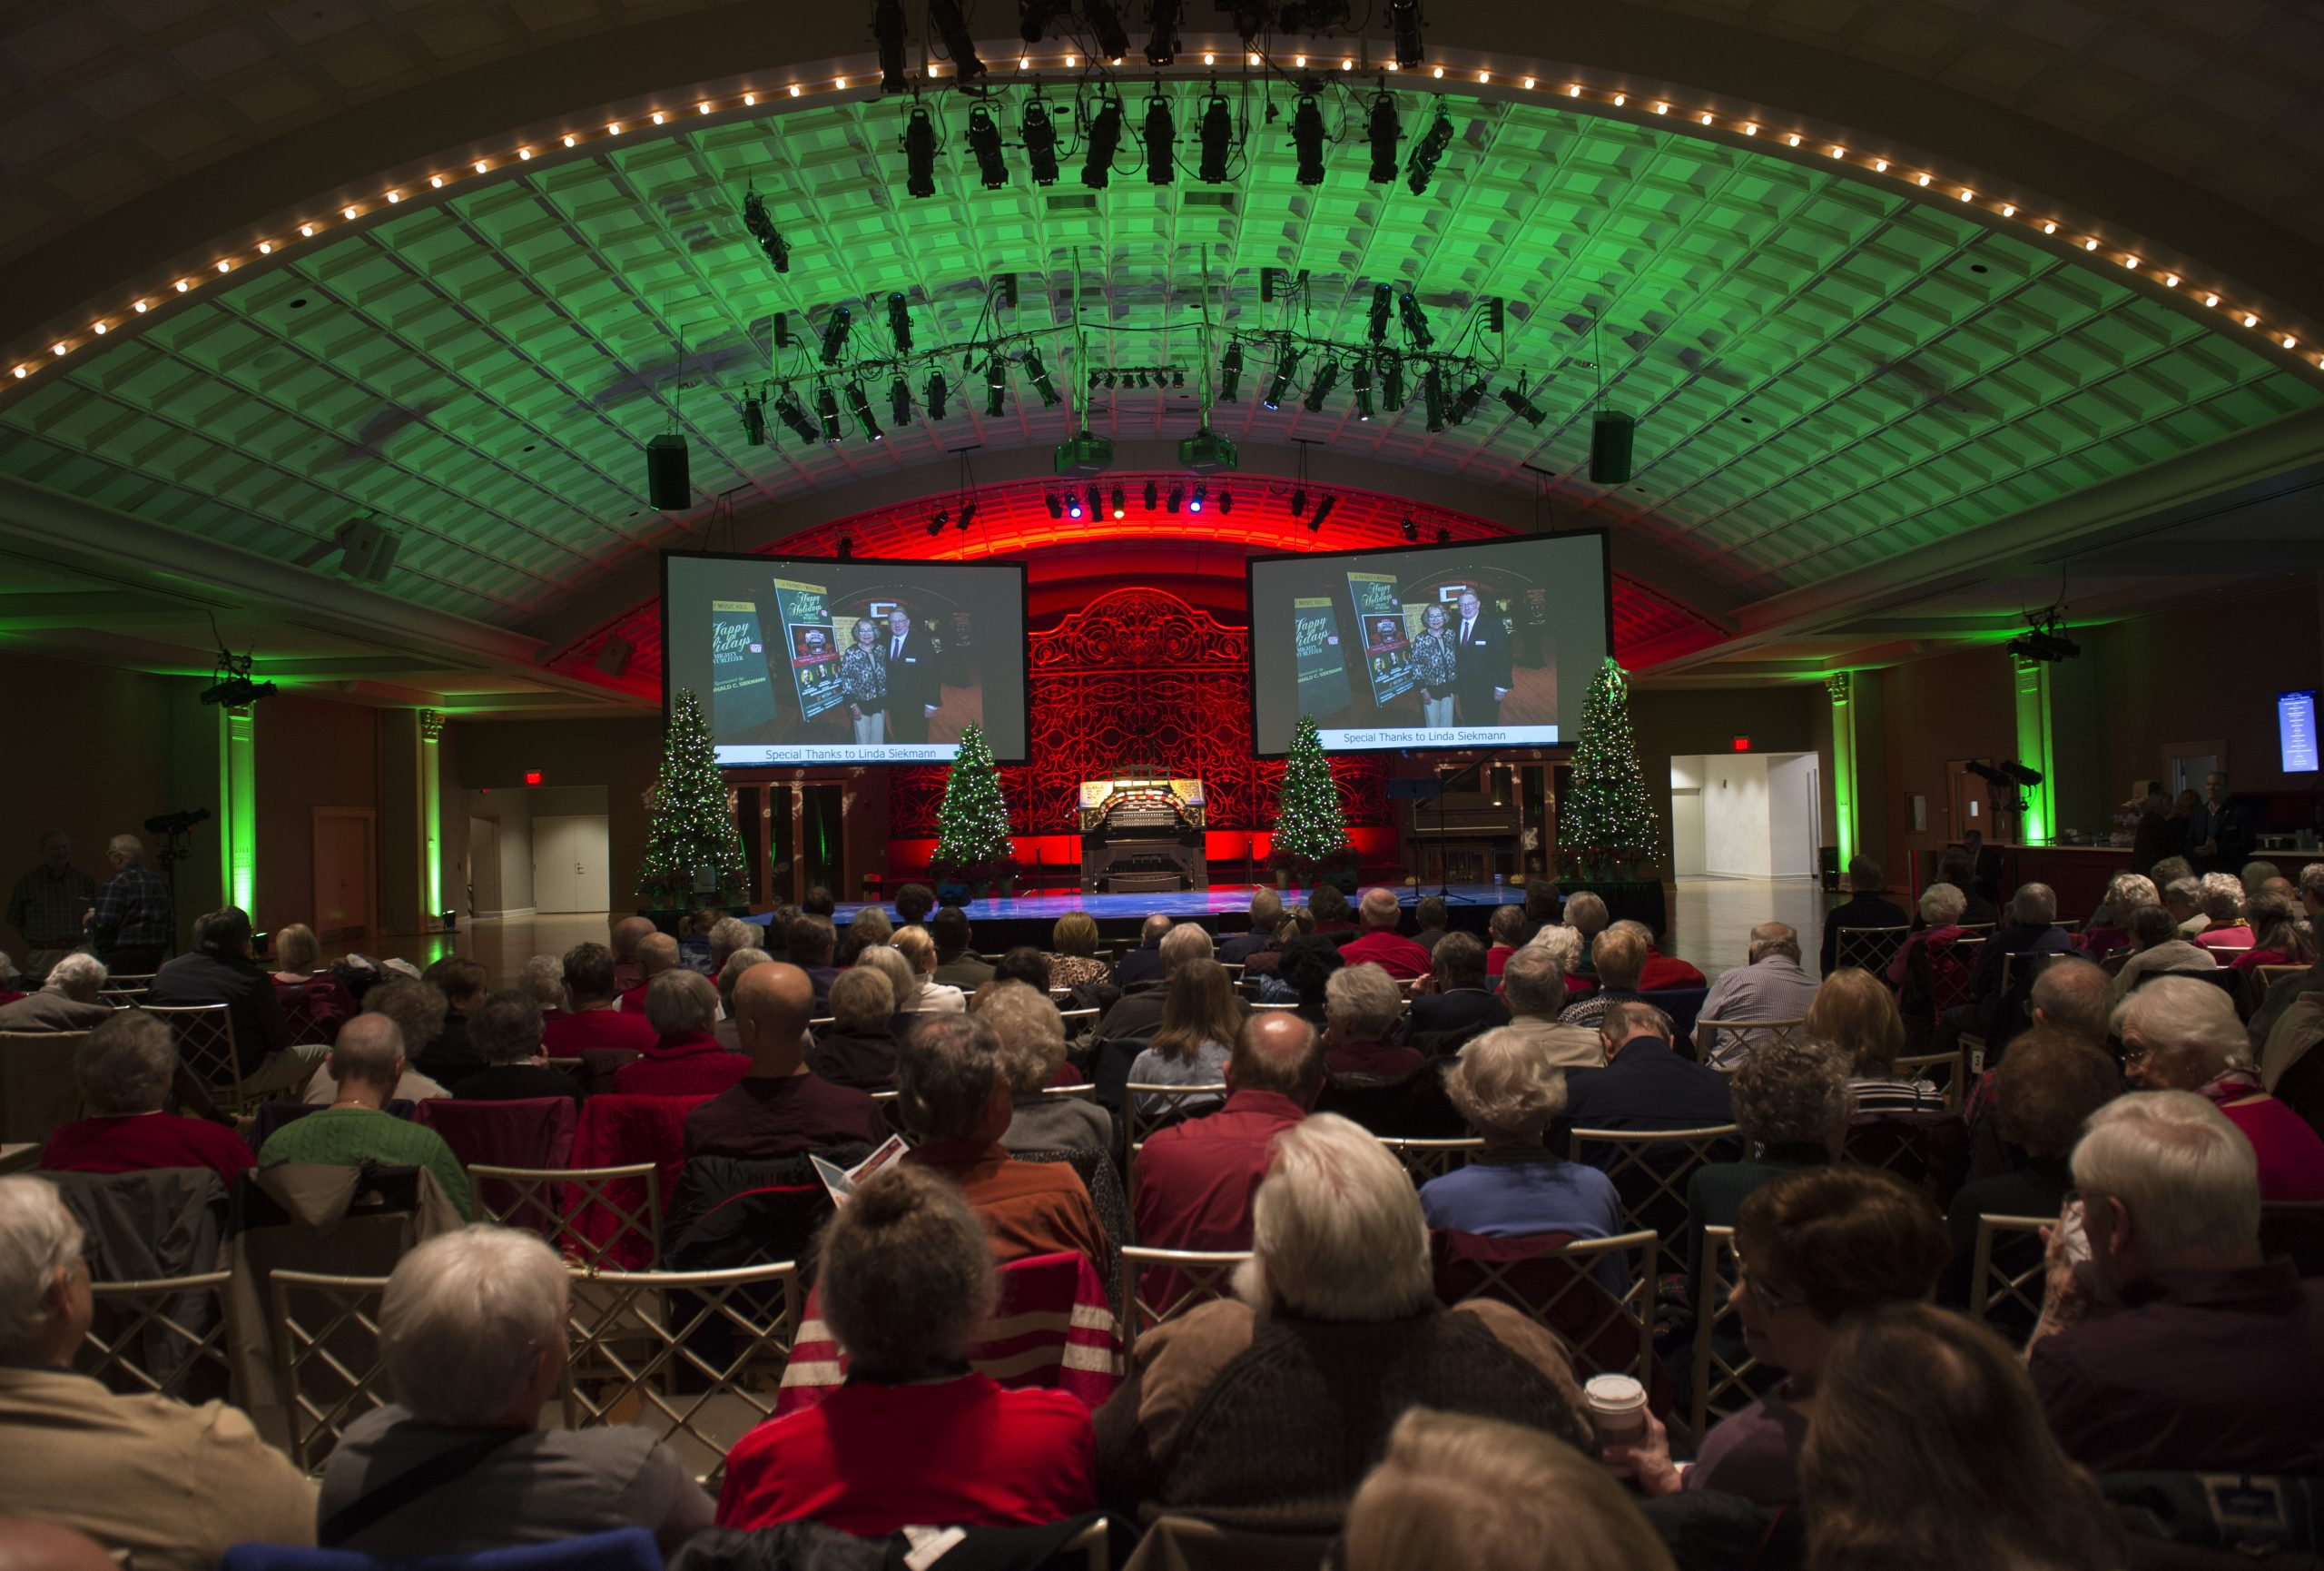 Happy Holidays with the Mighty Wurlitzer Organ on December 10, 2021 in the Ballroom.